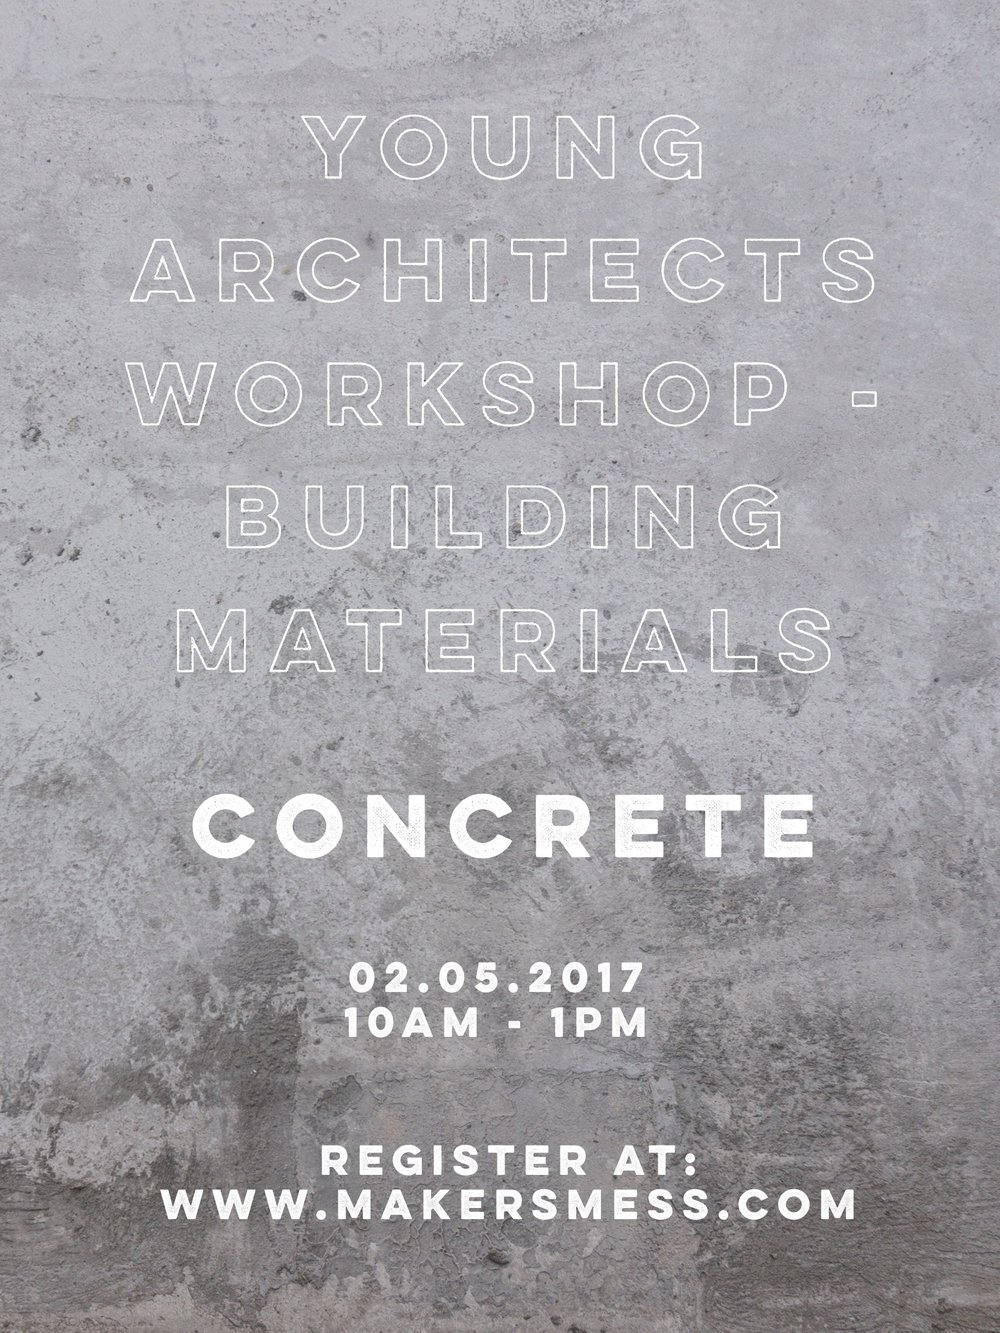 170205_flyer_concrete_jnw.jpg